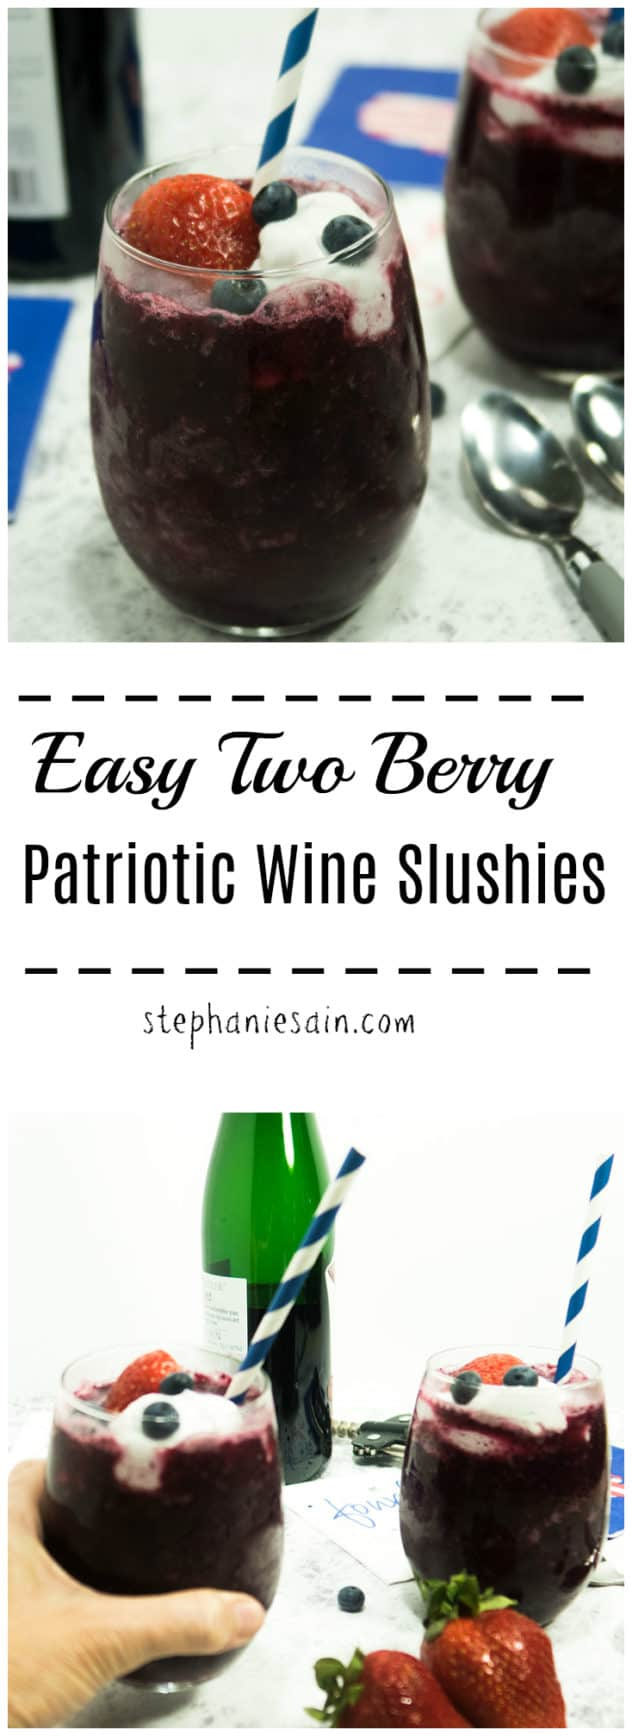 Easy Two Berry Patriotic Wine Slushies are the perfect way to cool off this summer. Made with frozen berries and topped with coconut cream. Vegan & Gluten Free.